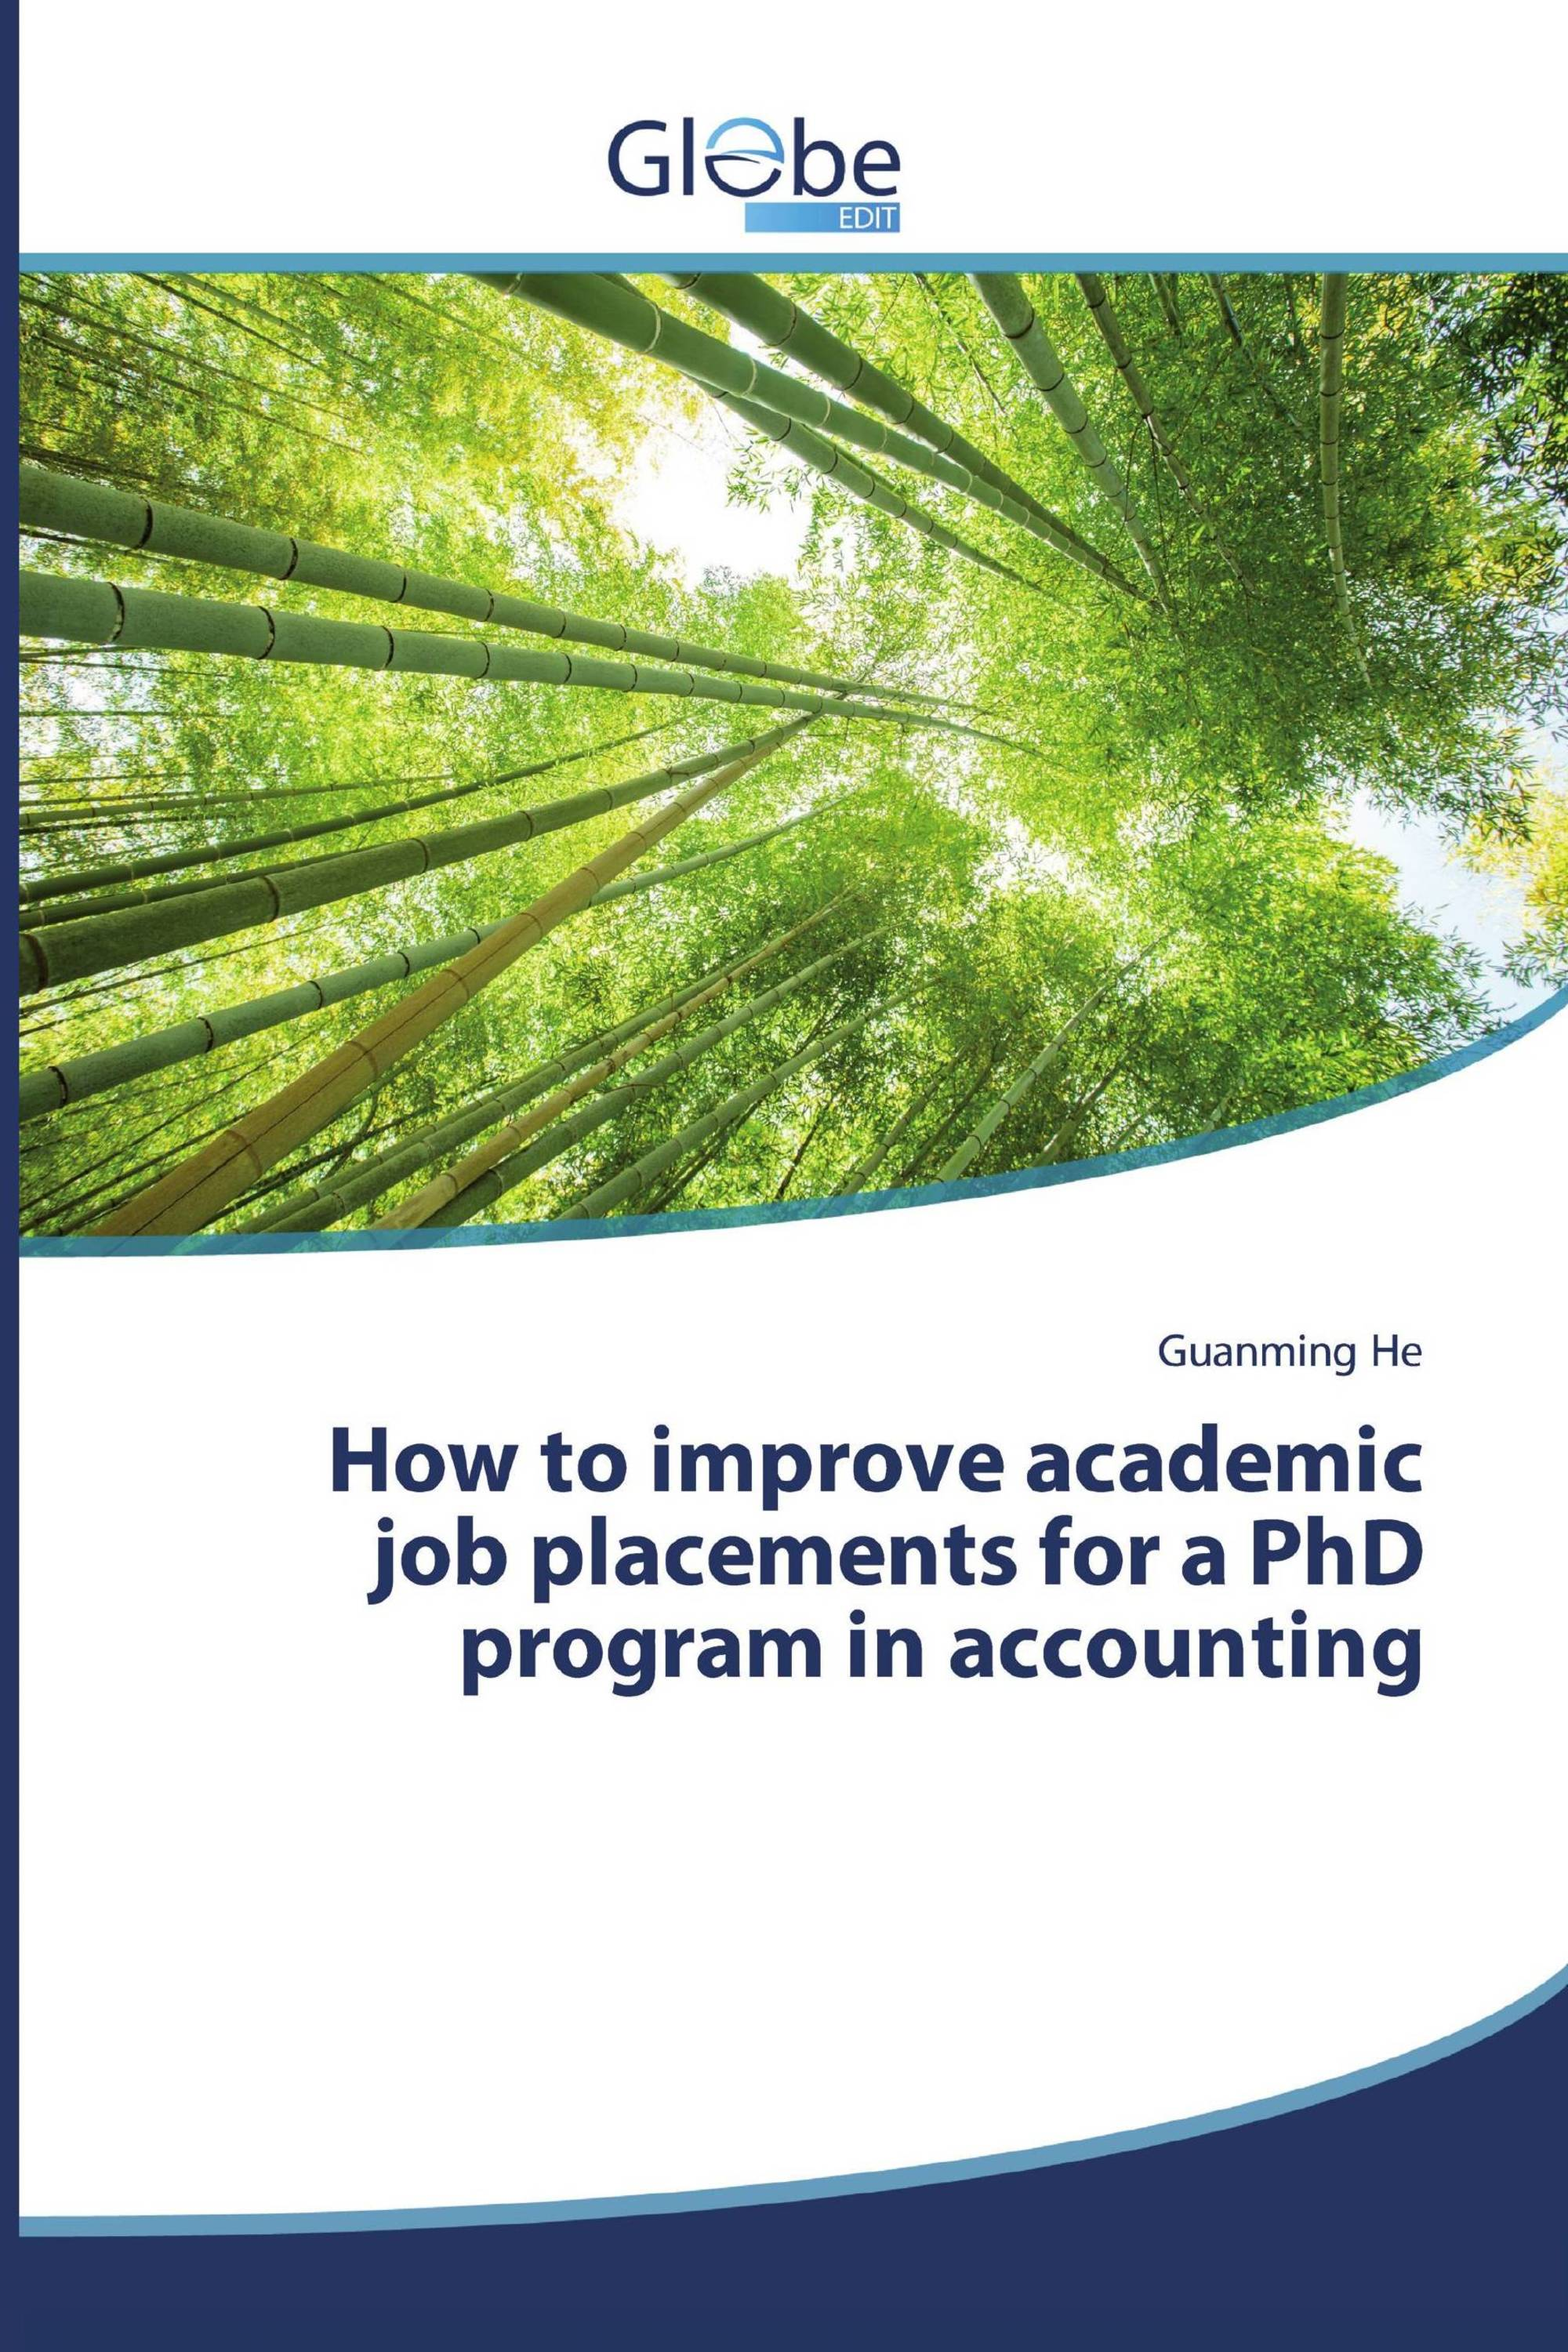 How to improve academic job placements for a PhD program in accounting